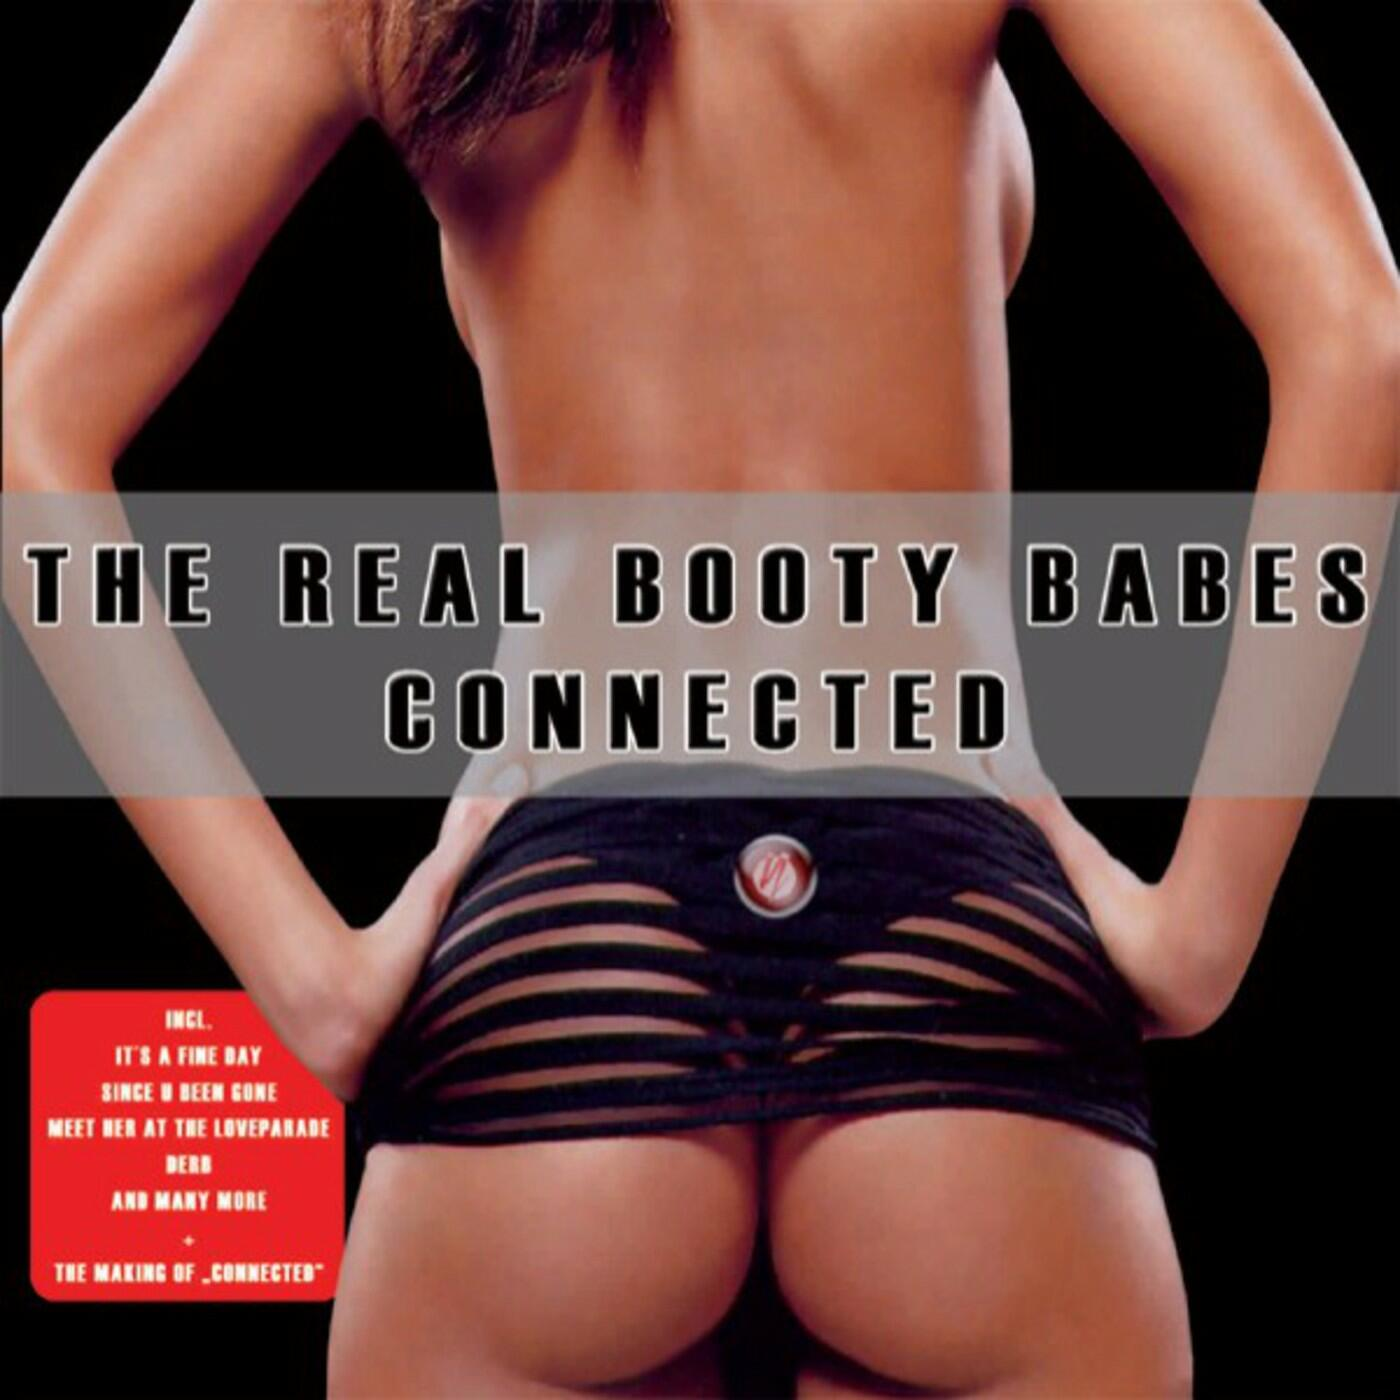 Babes Free real booty babes radio: listen to free music & get the